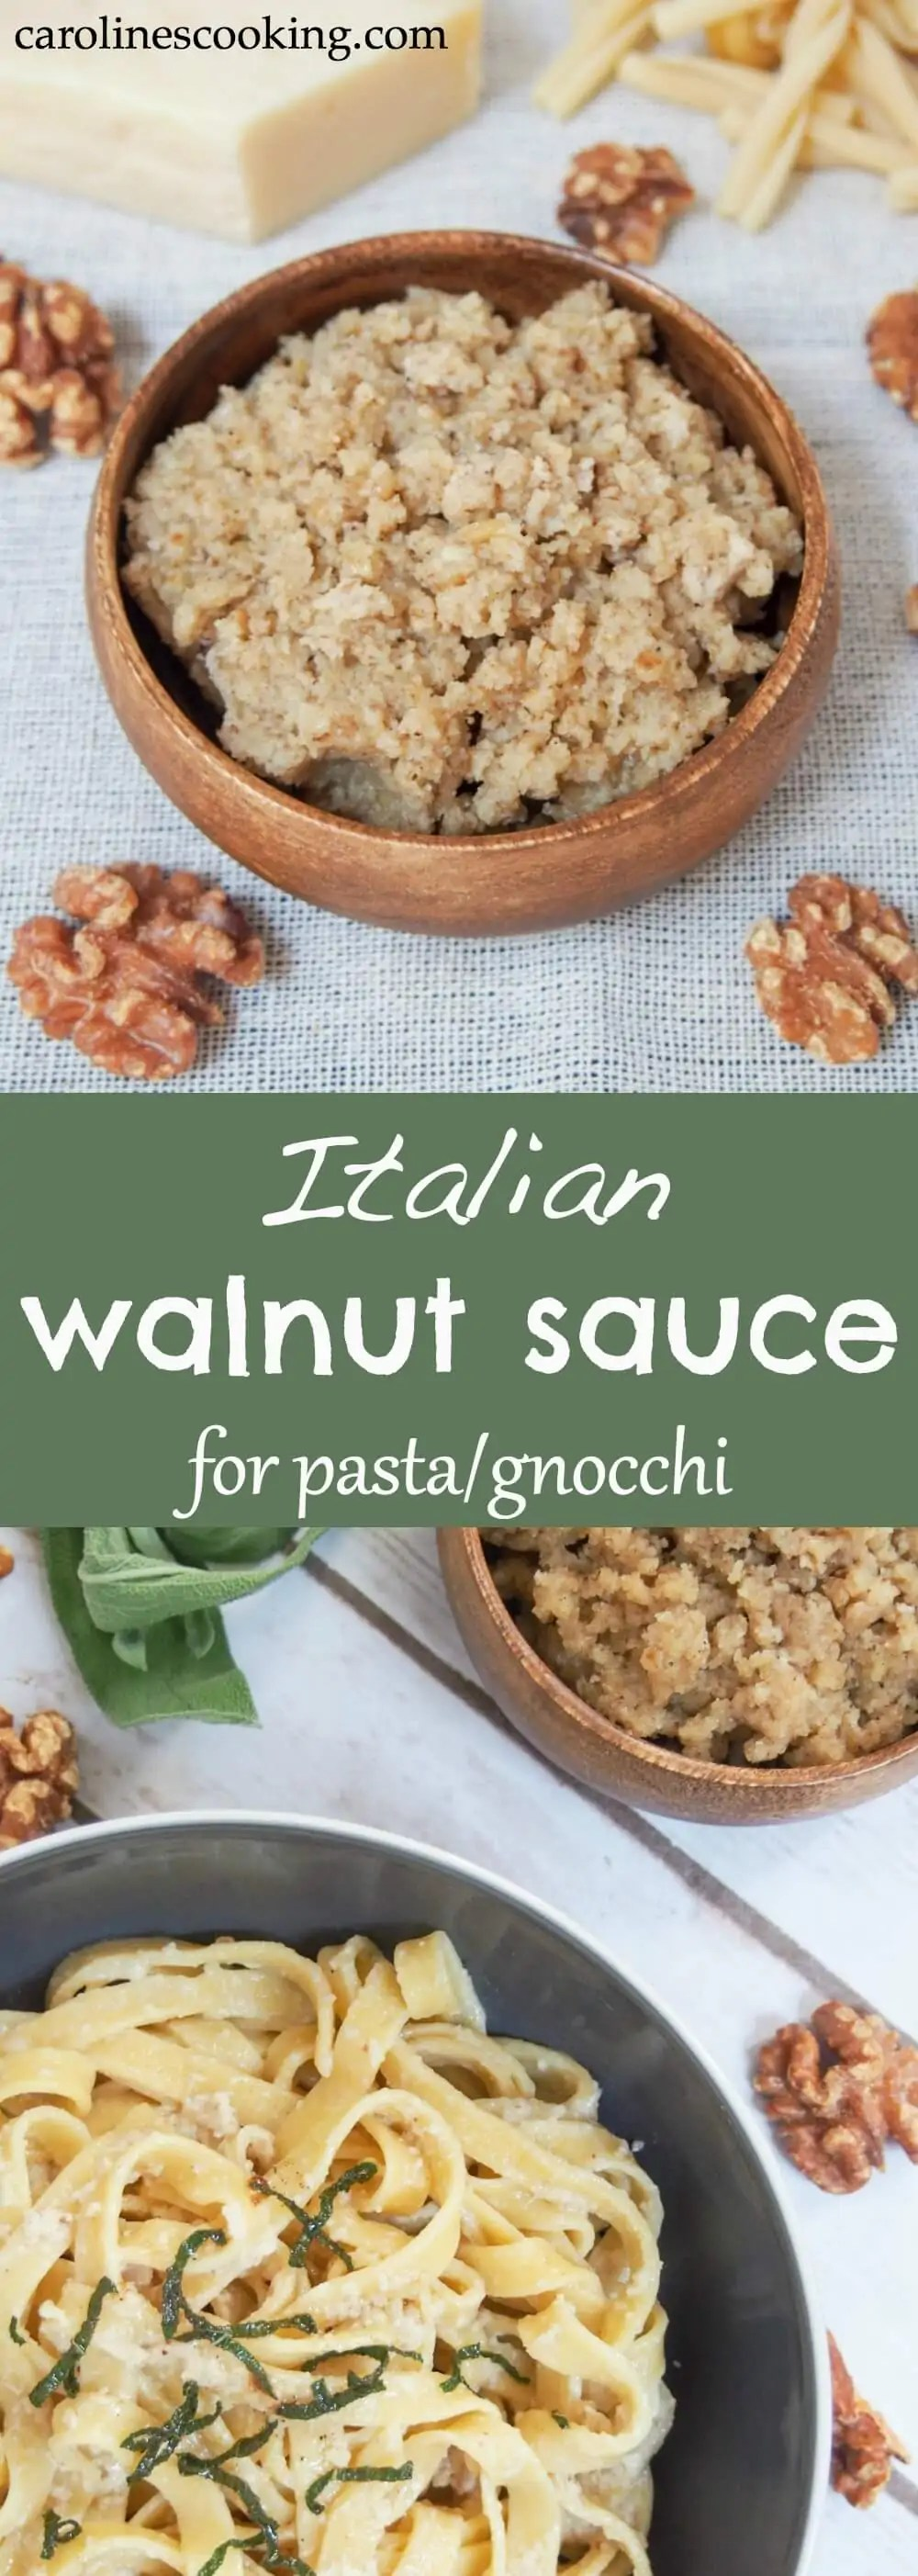 Walnut sauce is a lesser-known Italian sauce for pasta that's easy to make and surprisingly creamy and flavorful given the humble ingredients. A great way to change up pasta night!